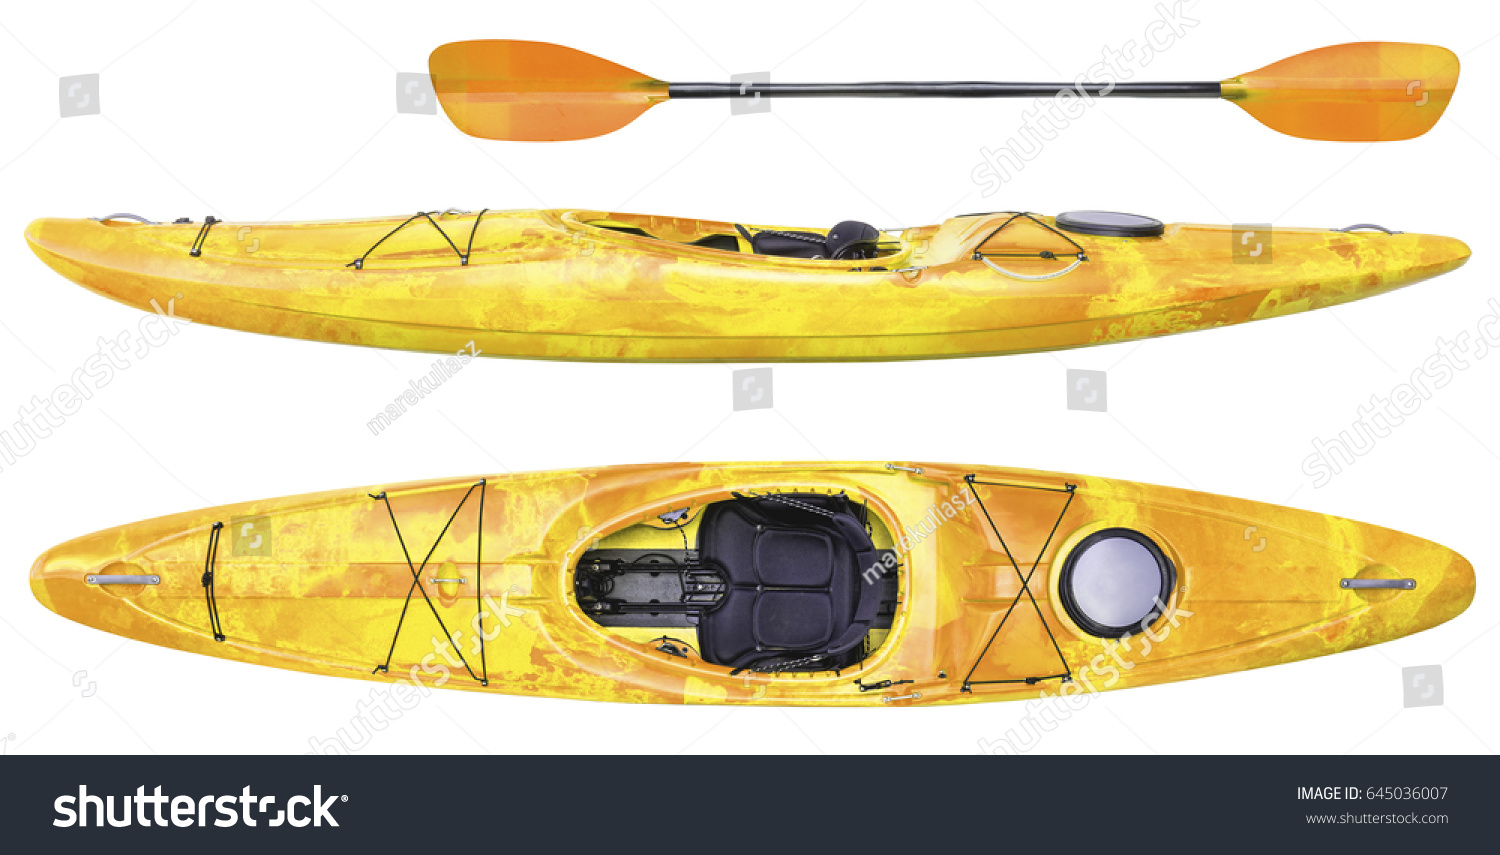 Side And Top View Of Crossover Kayak Whitewater River Running Paddle